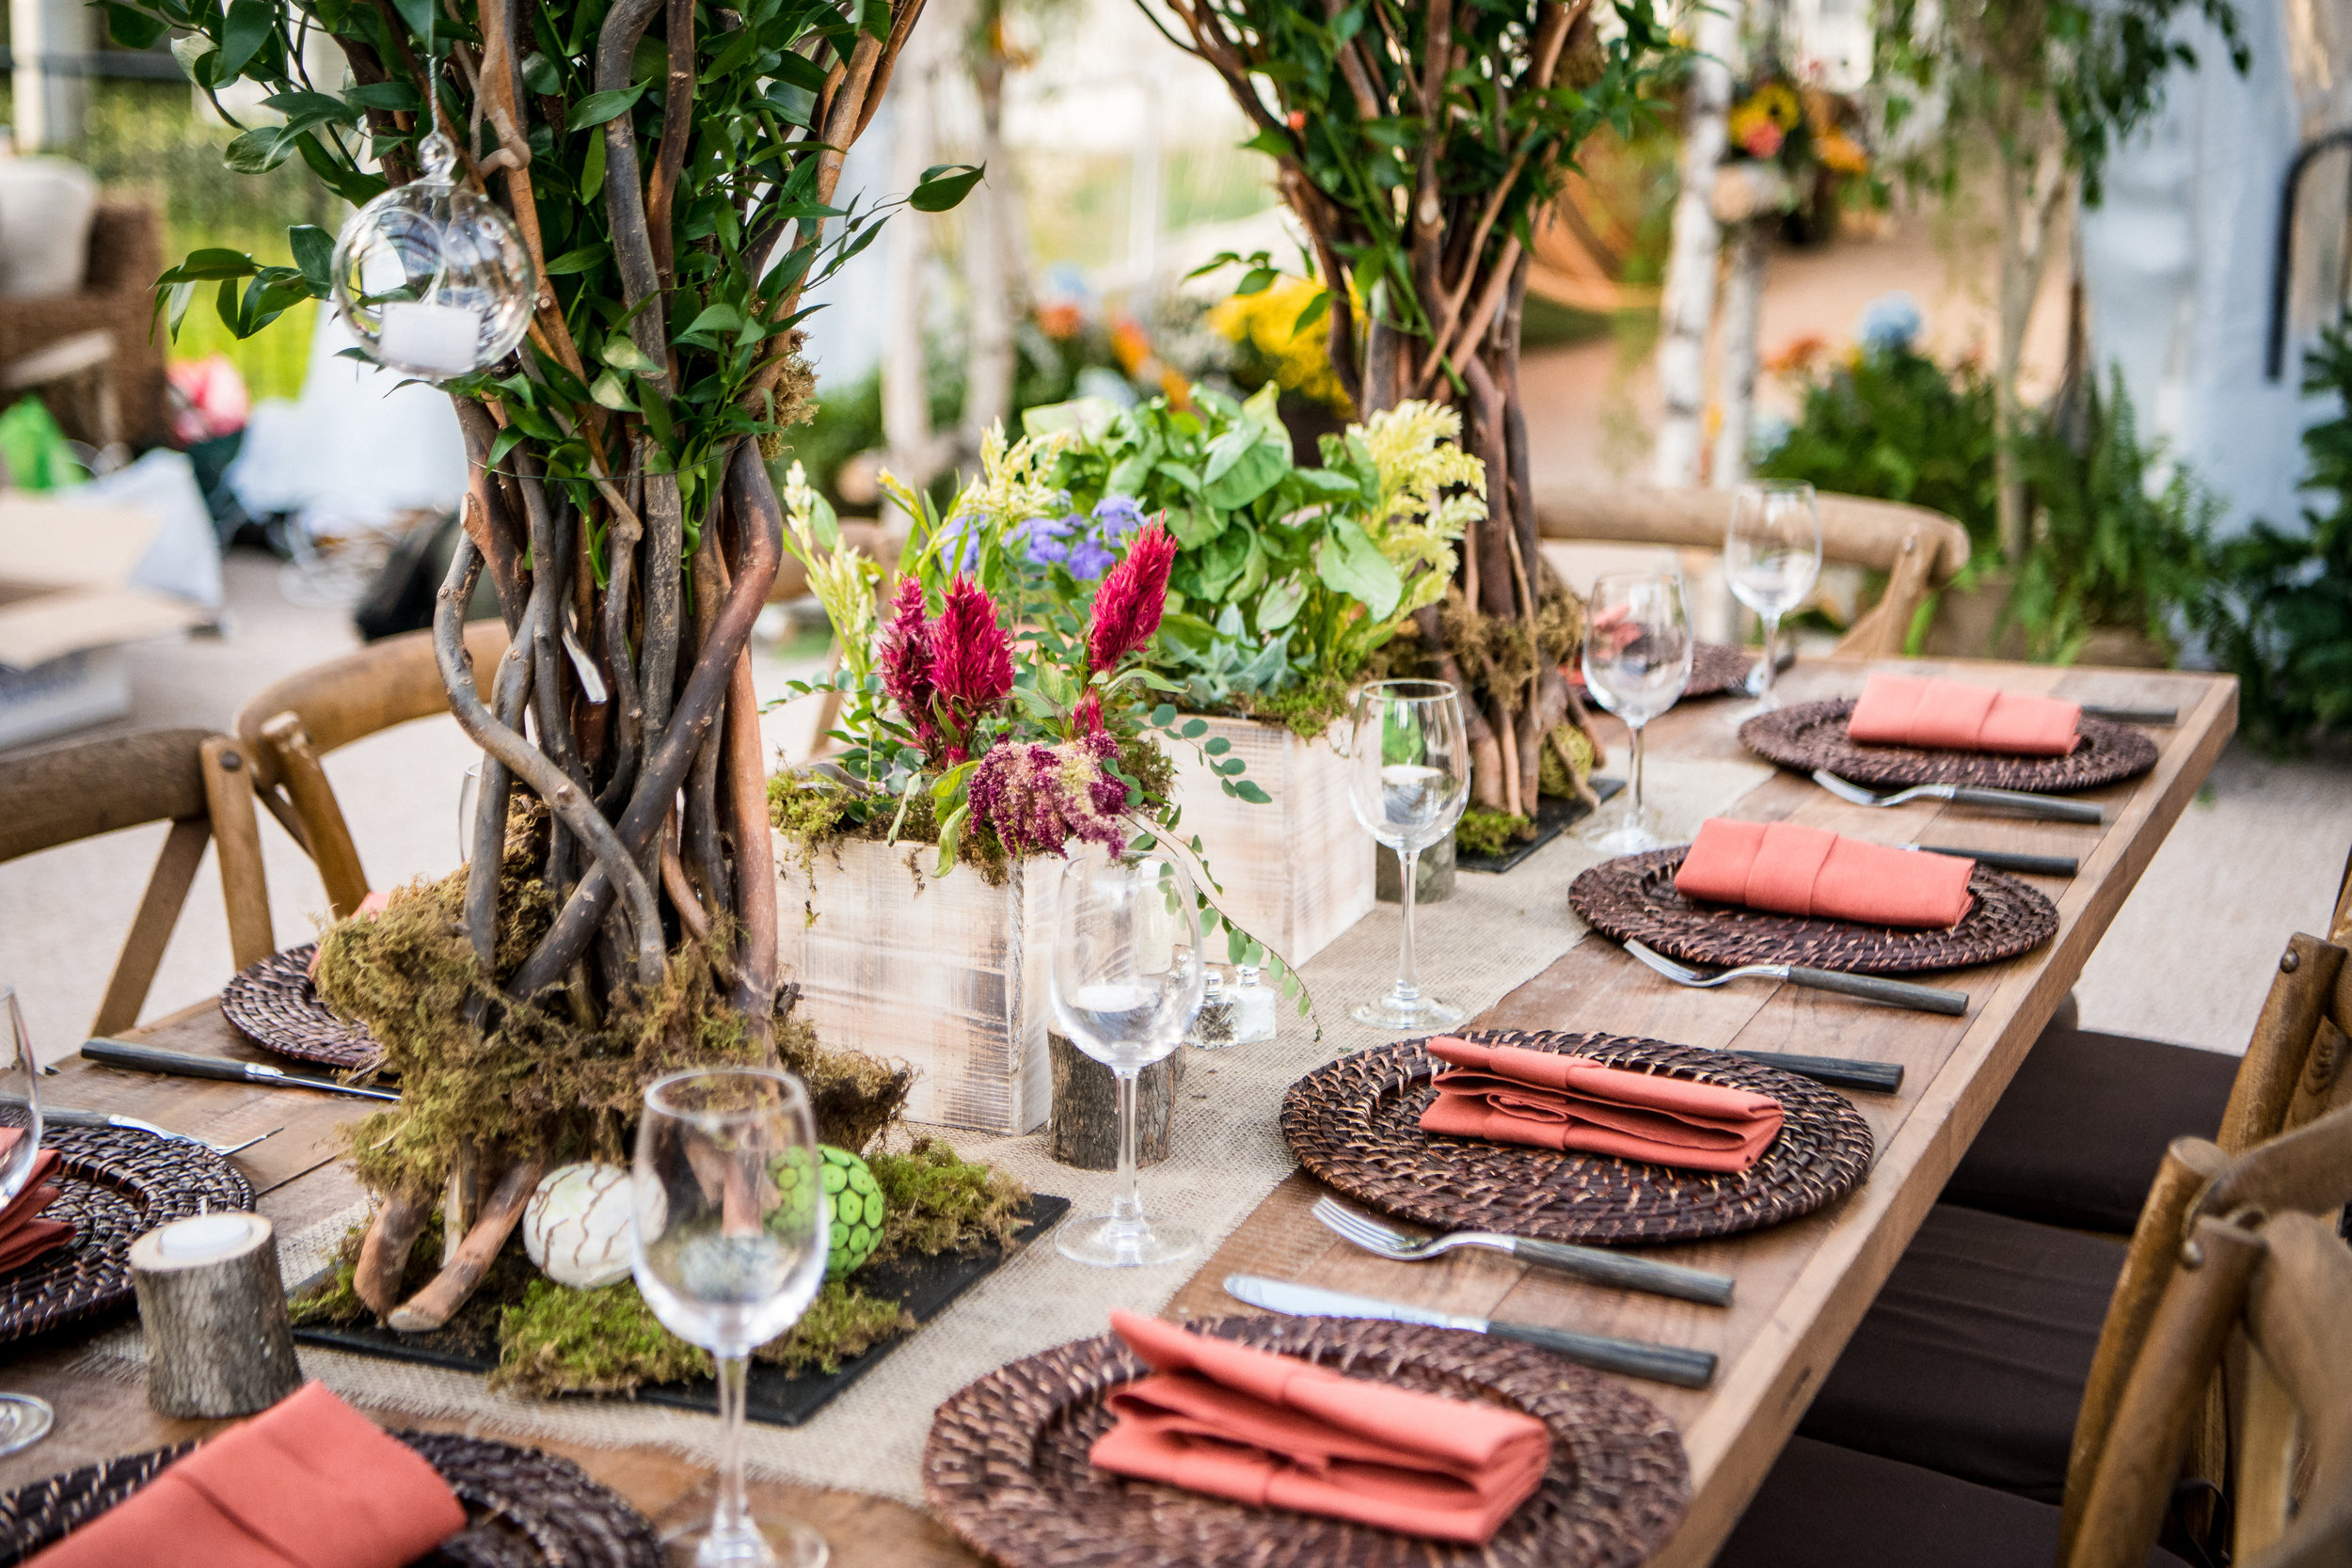 NJ+centerpiece+design+decor+rentals+PA+NY+eggsotic+events.jpg